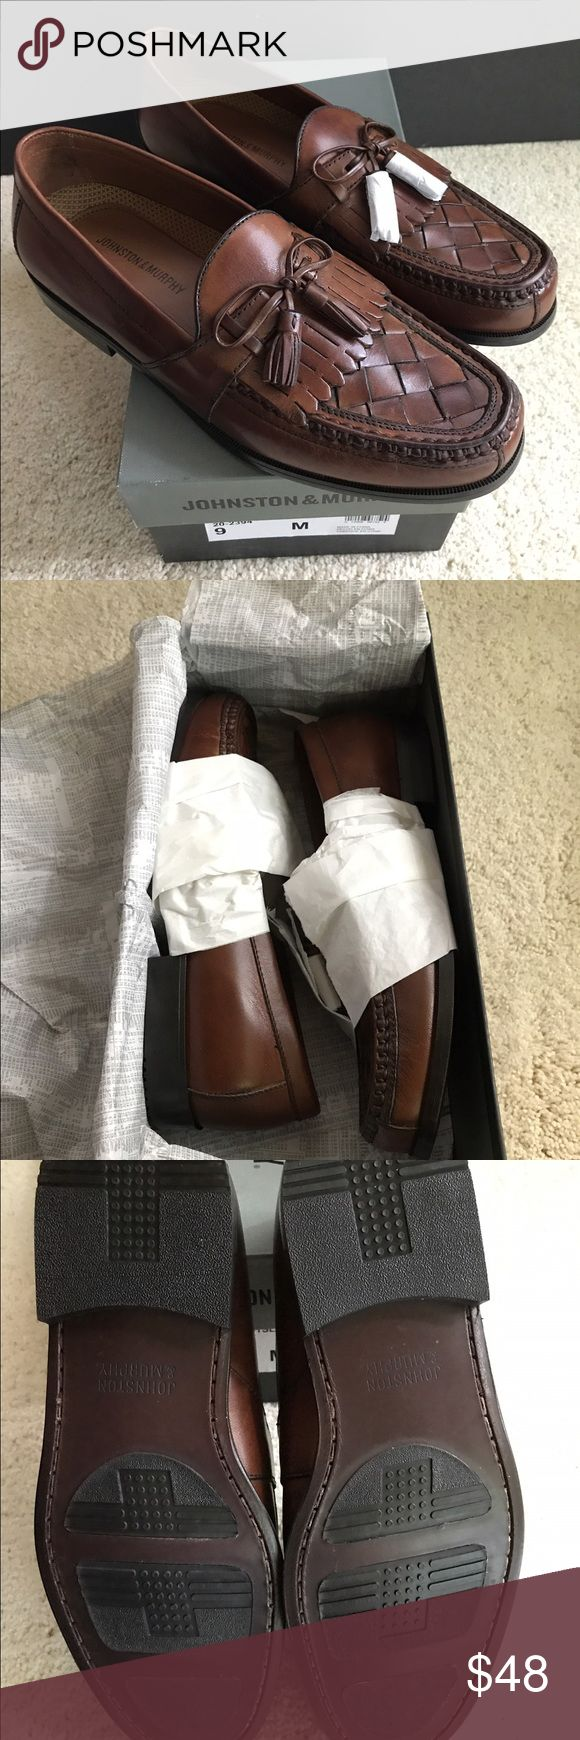 Johnston & Murphy Shoes Brand new in box. Johnston & Murphy Shoes Loafers & Slip-Ons